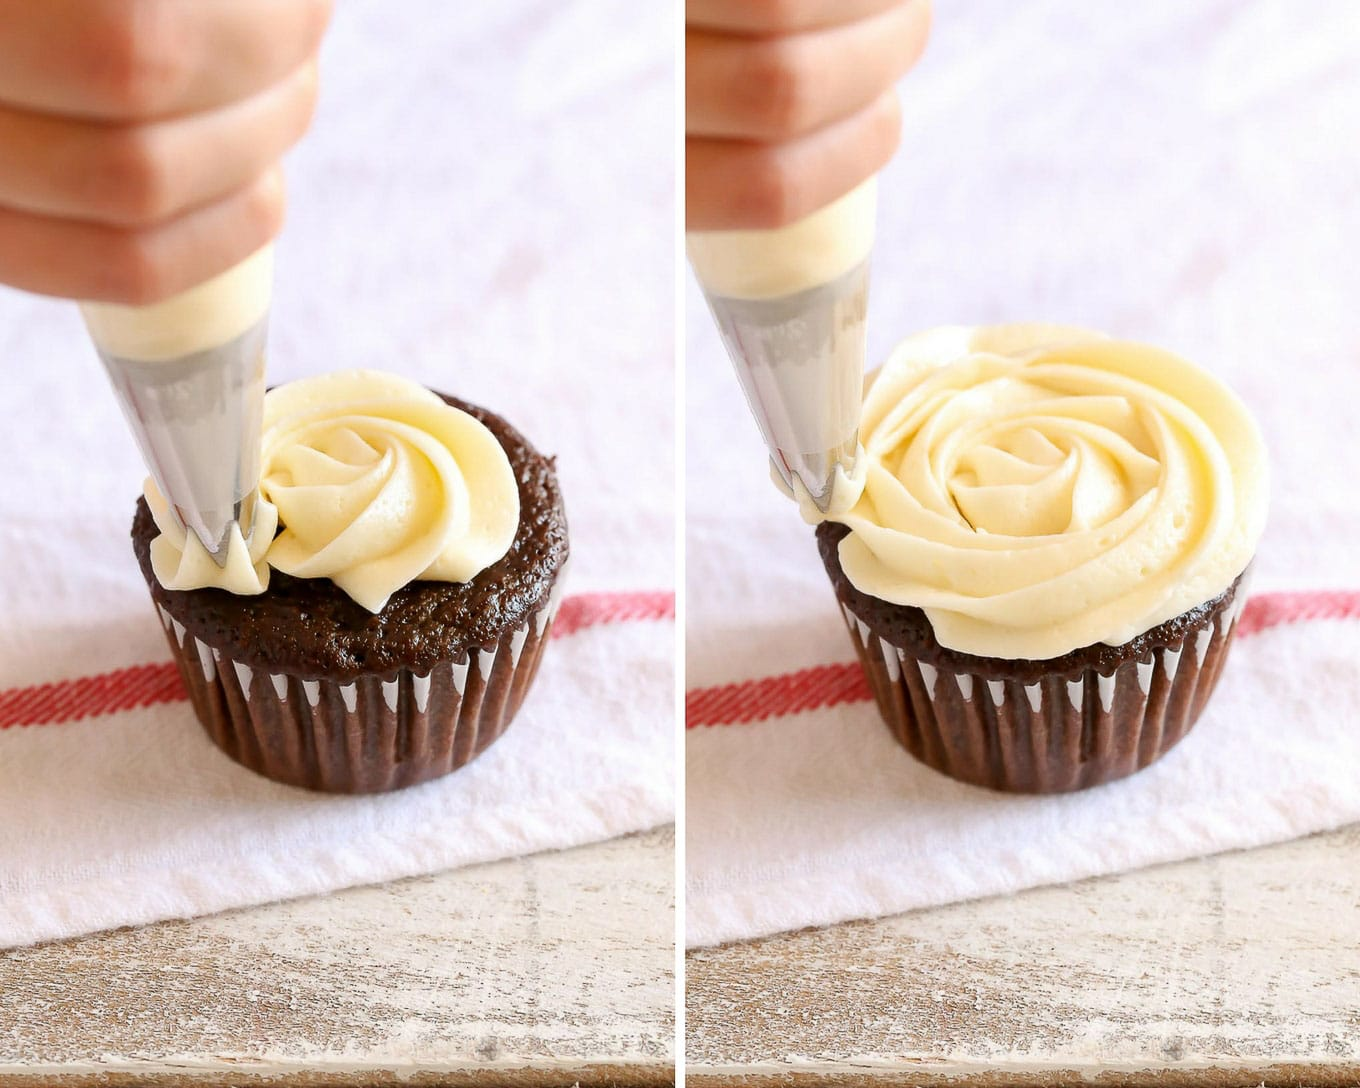 Learn to prepare your piping bag, the easiest way to fill your bag, and how to frost cupcakes like a pro with this easy piping tutorial!